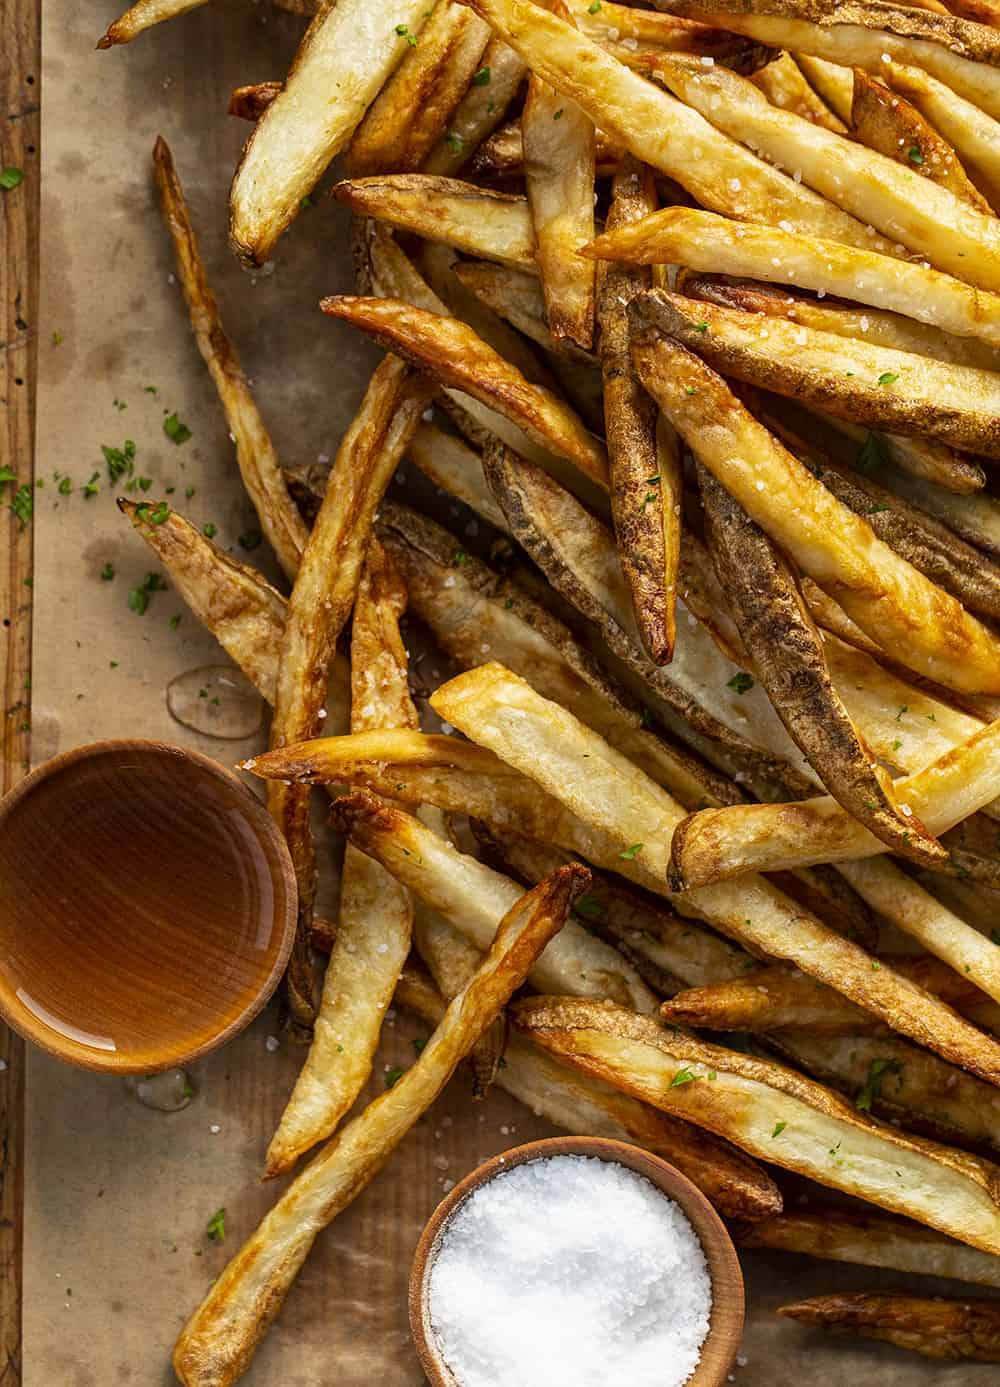 Salt & Vinegar French Fries Made in an Air Fryer